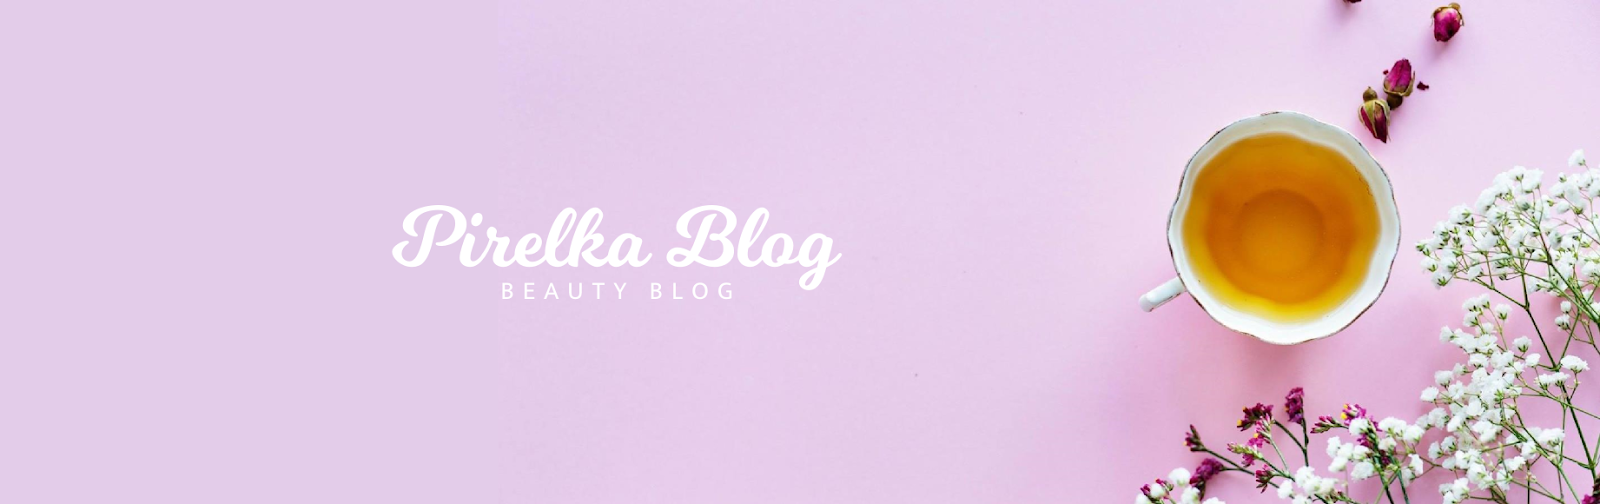 Pirelka blog - Beauty Blog ♡